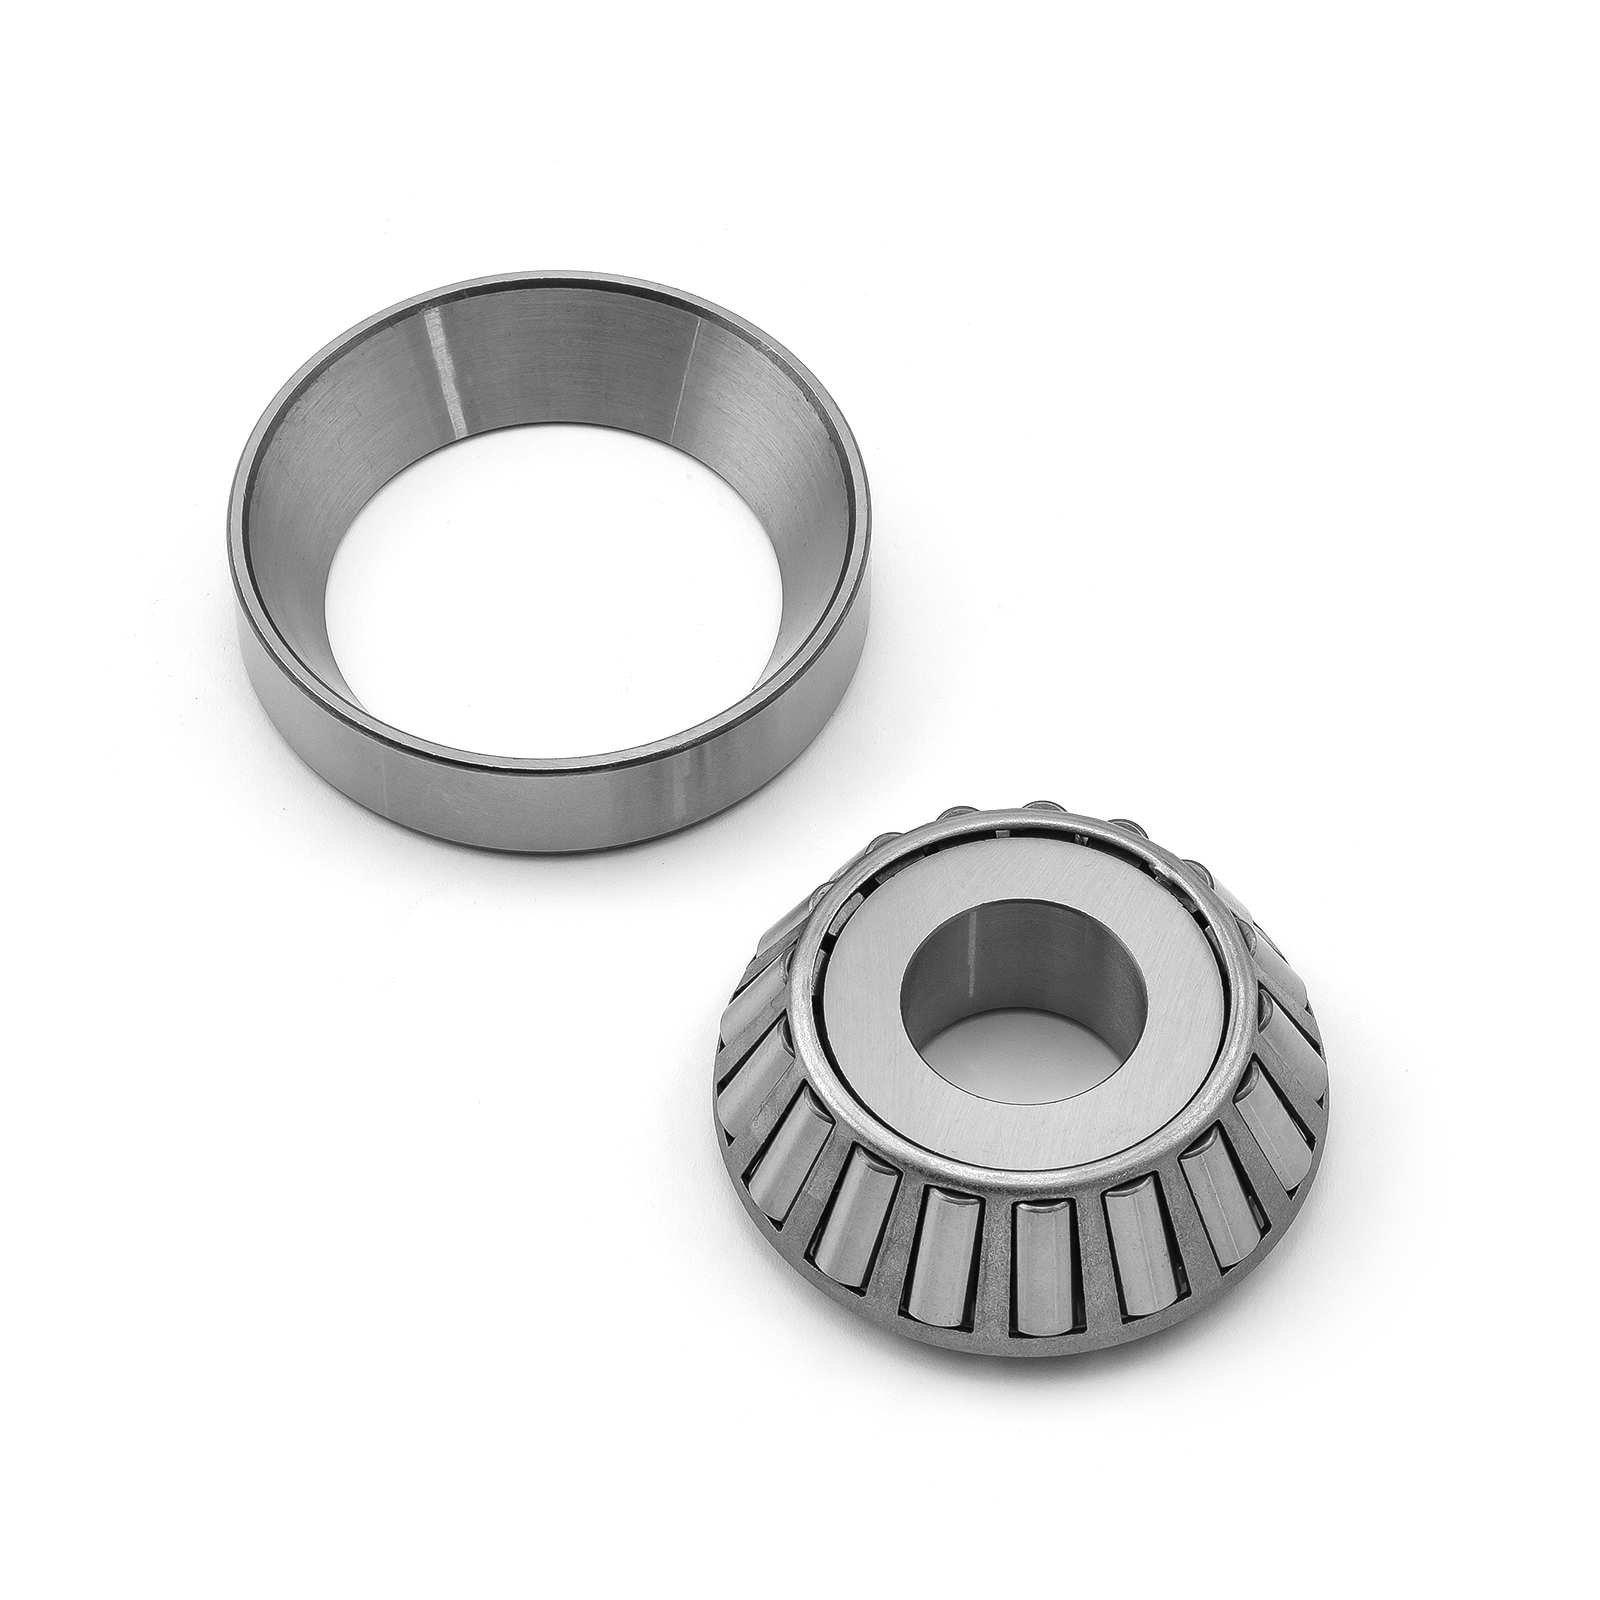 "Pinion Bearing w/ 1.3125"" Journal to suit 4.00"" Case"